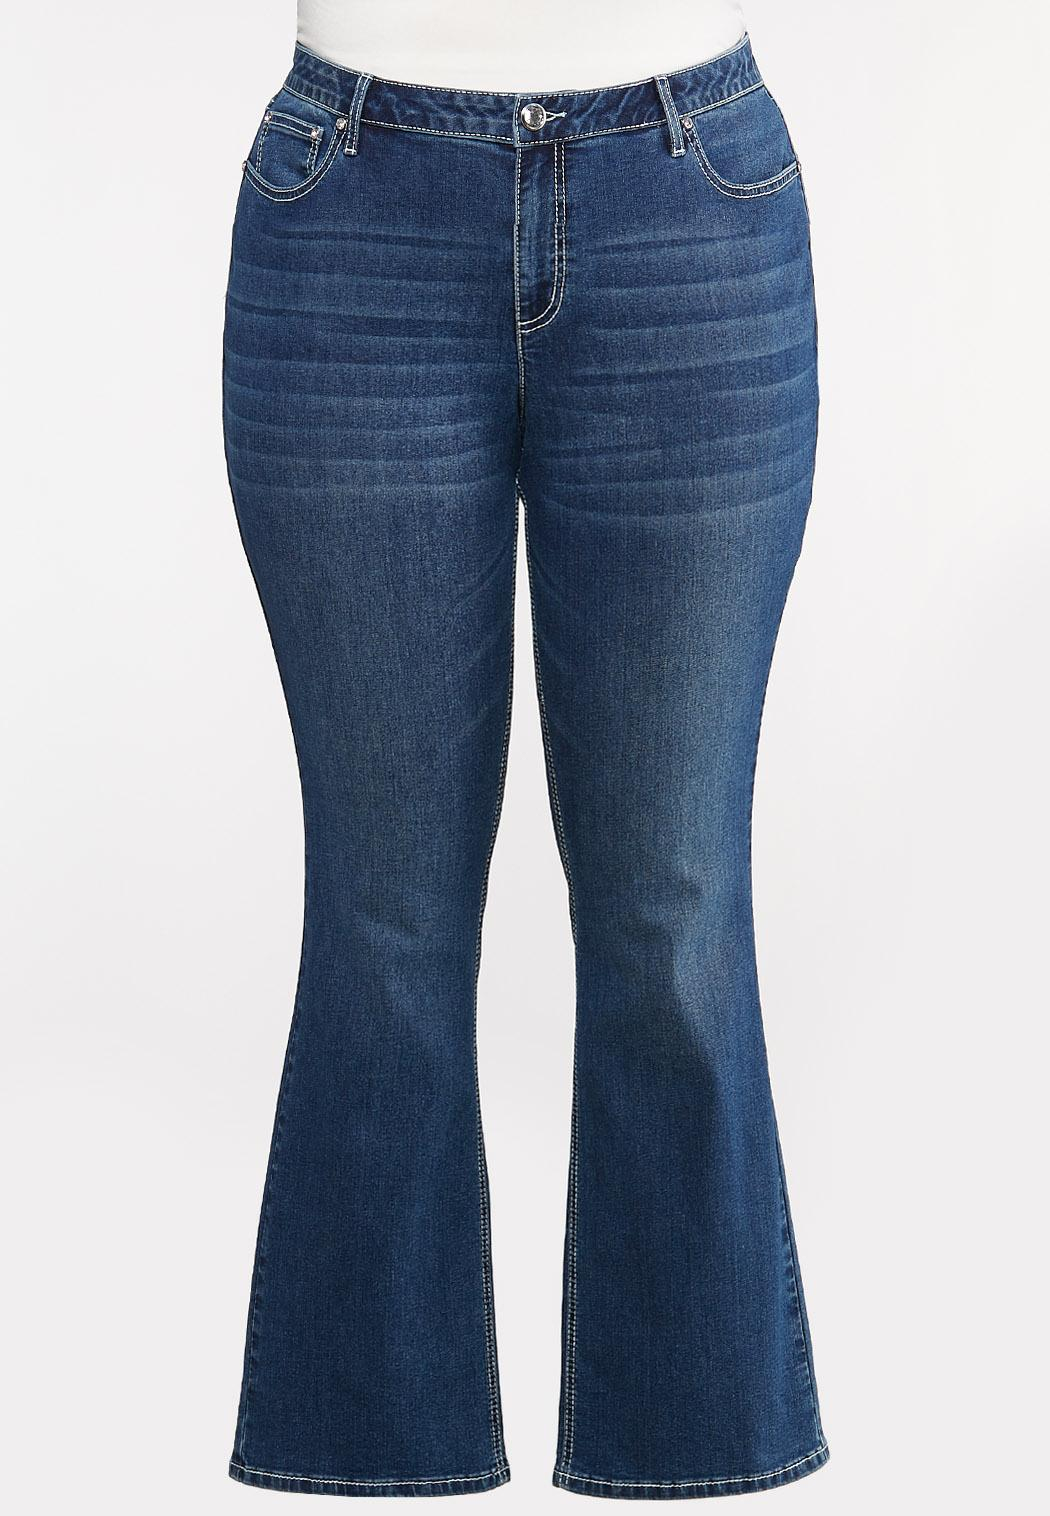 Plus Petite Sequin Embellished Pocket Jeans (Item #44098146)